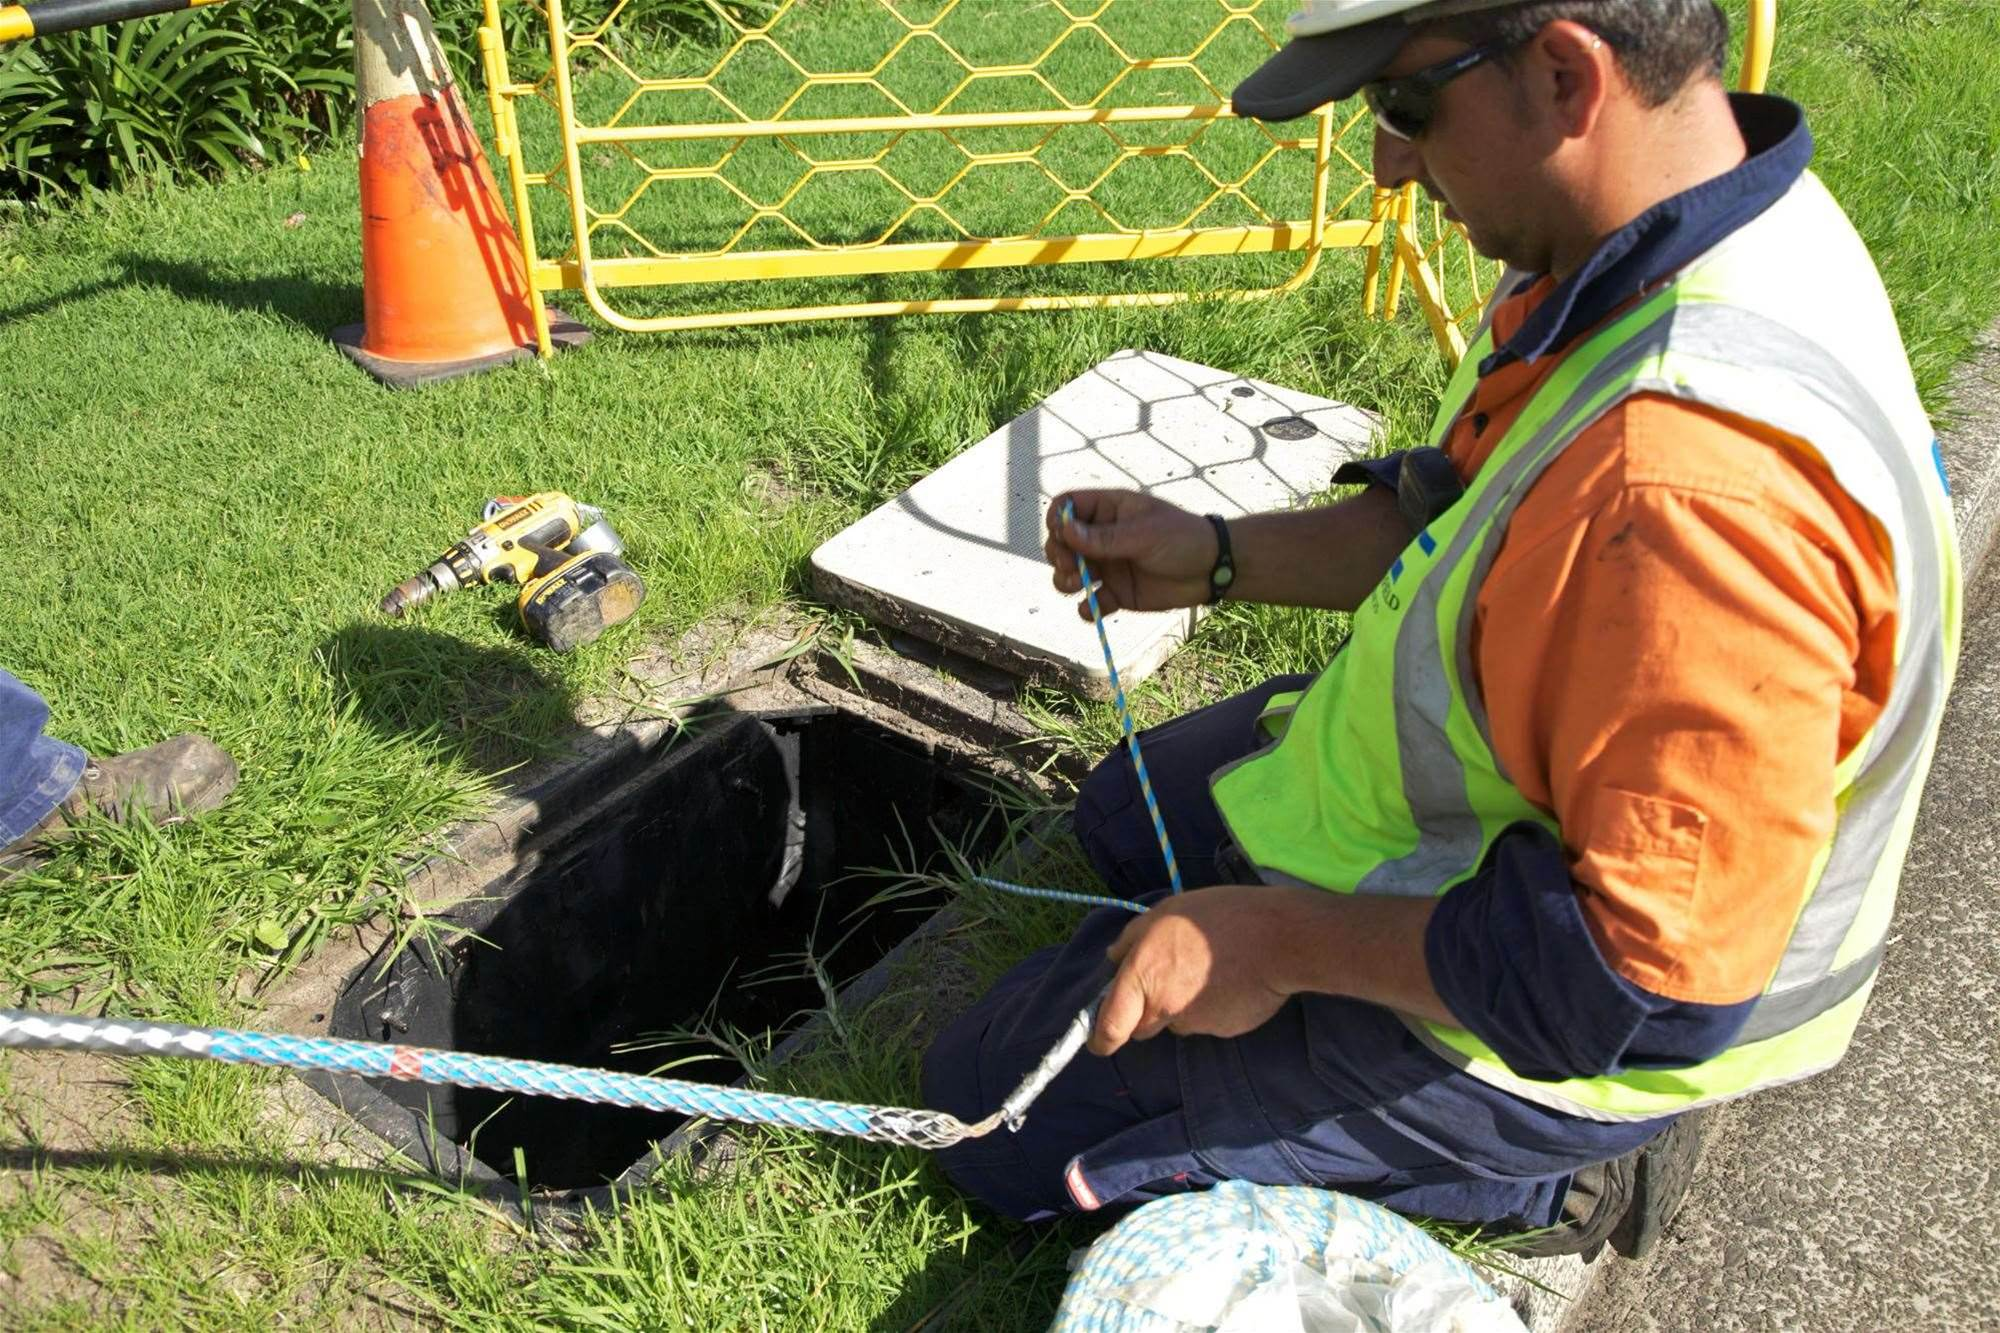 Public perception of NBN very positive: study